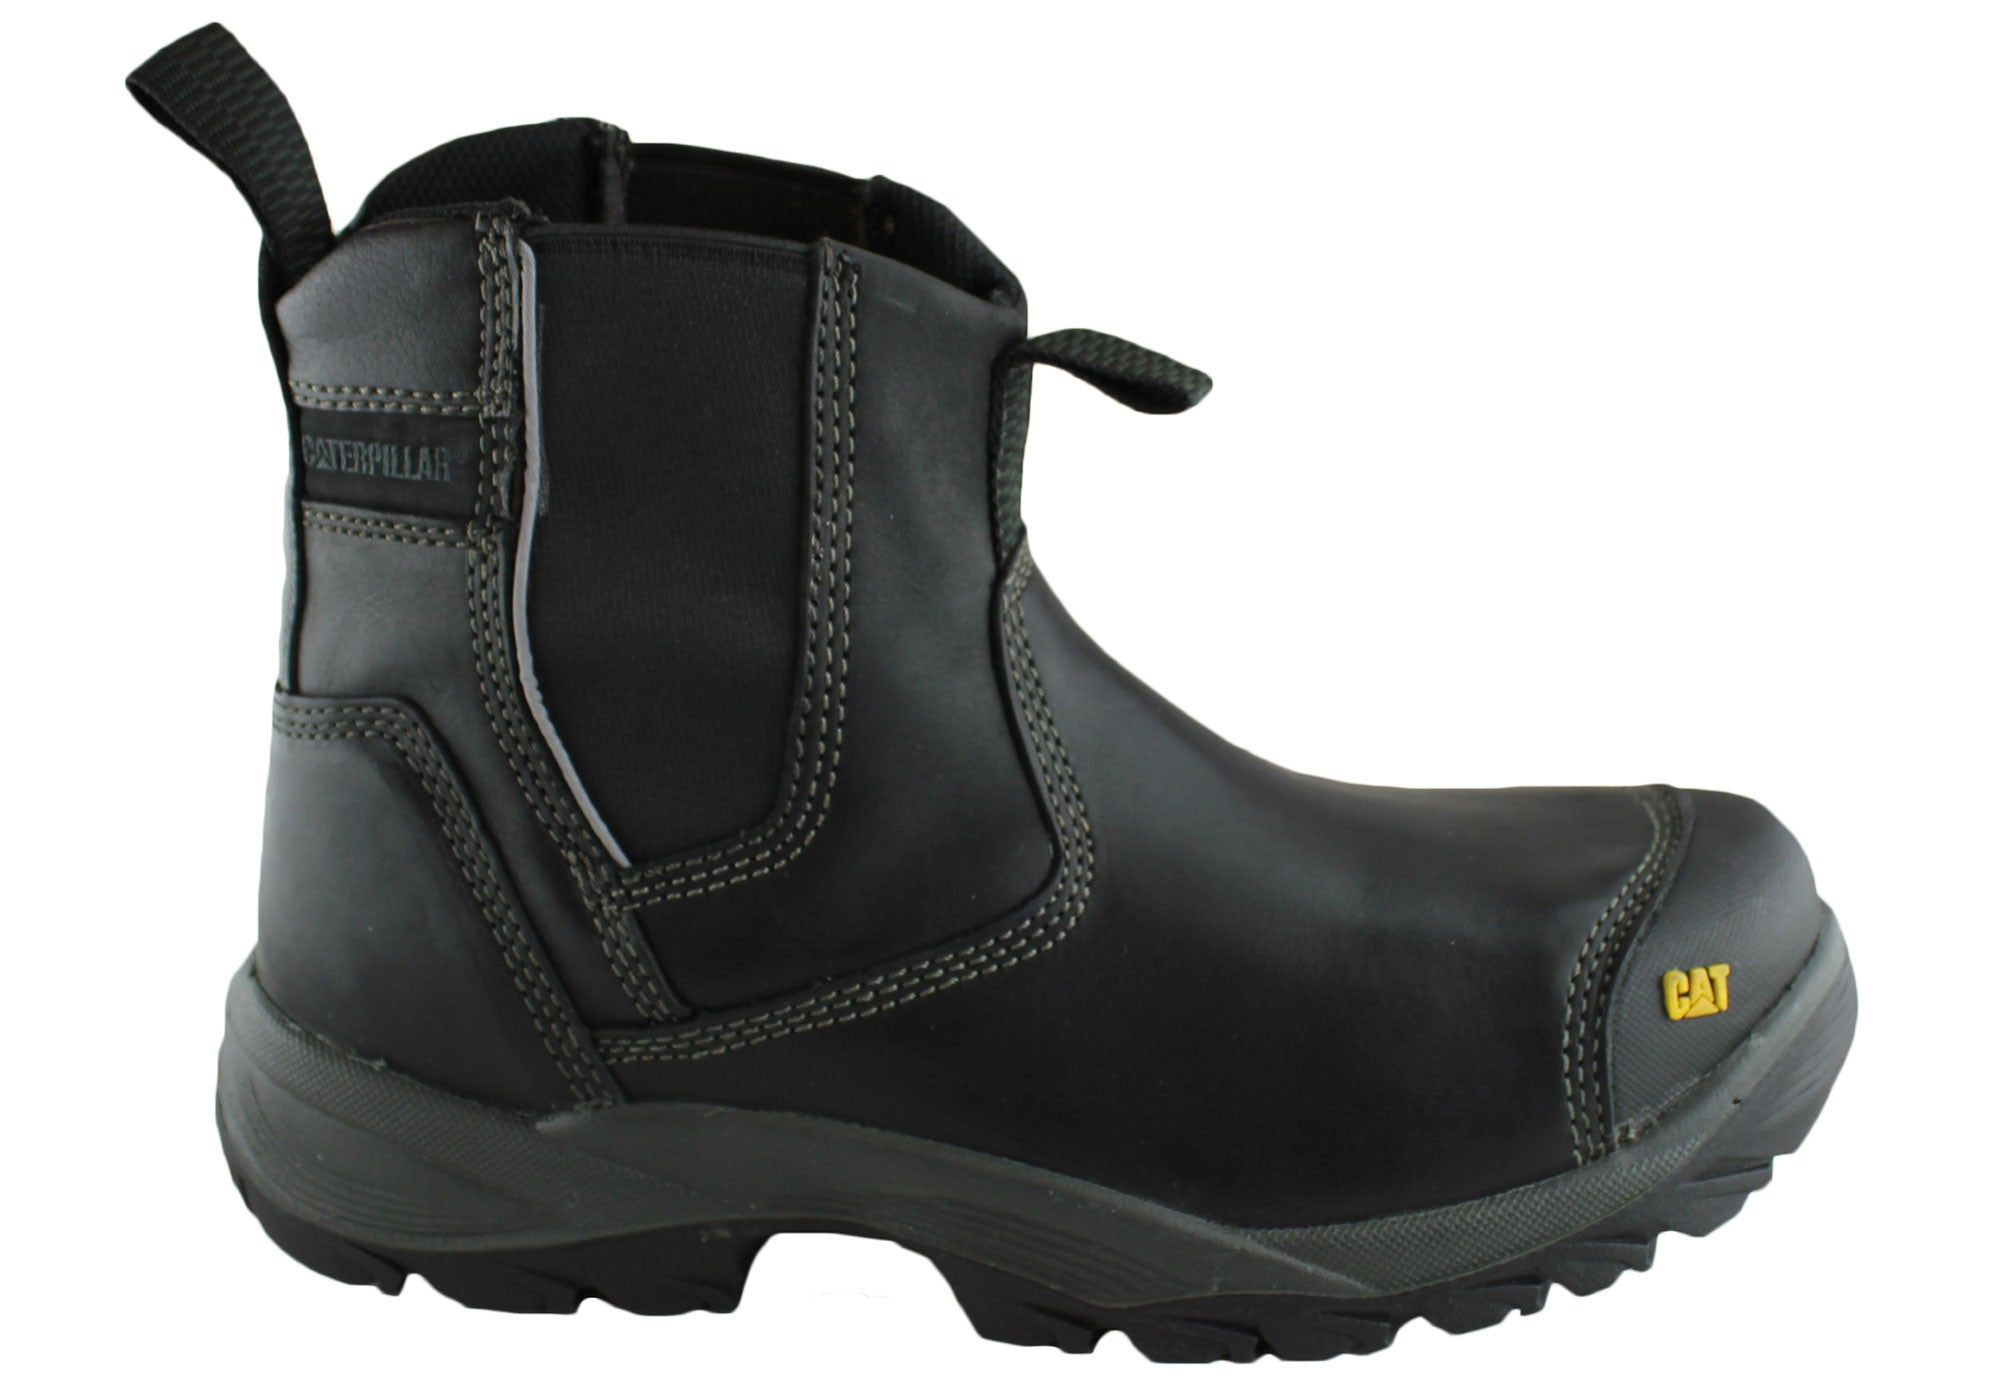 Details About New Caterpillar Cat Propane Mens Steel Toe Safety Boots